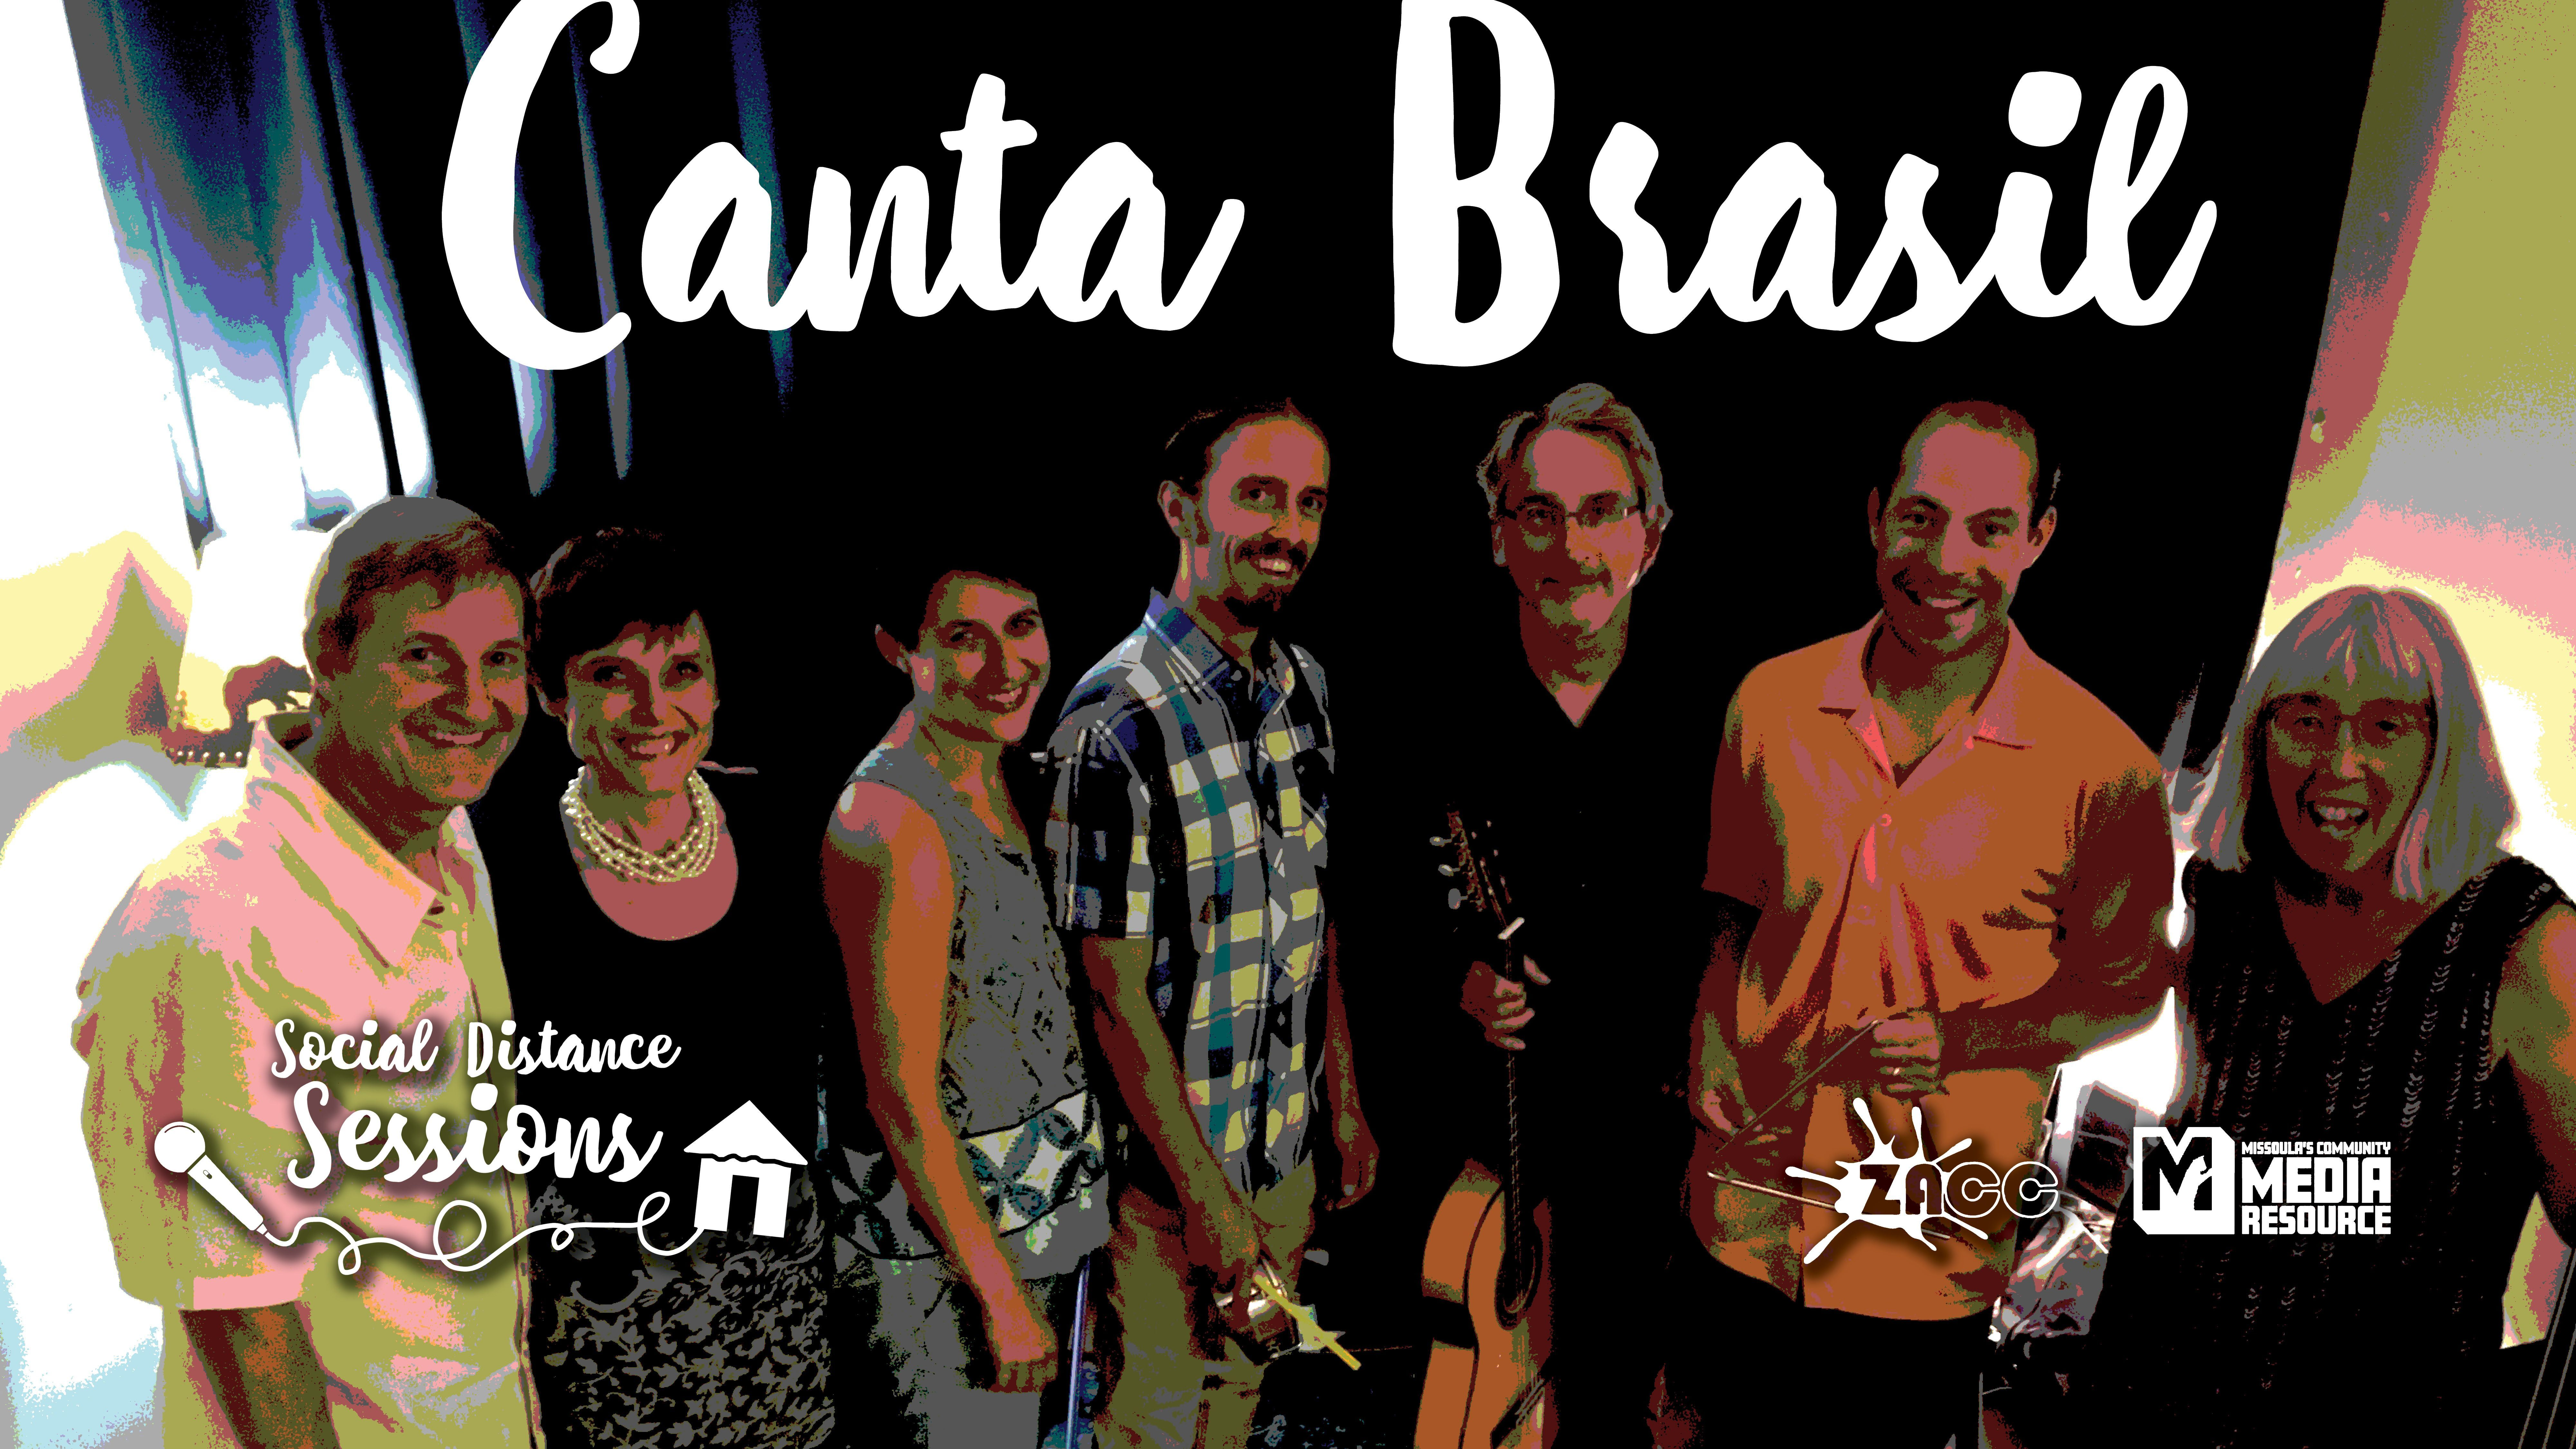 Social Distance Sessions: Canta Brasil